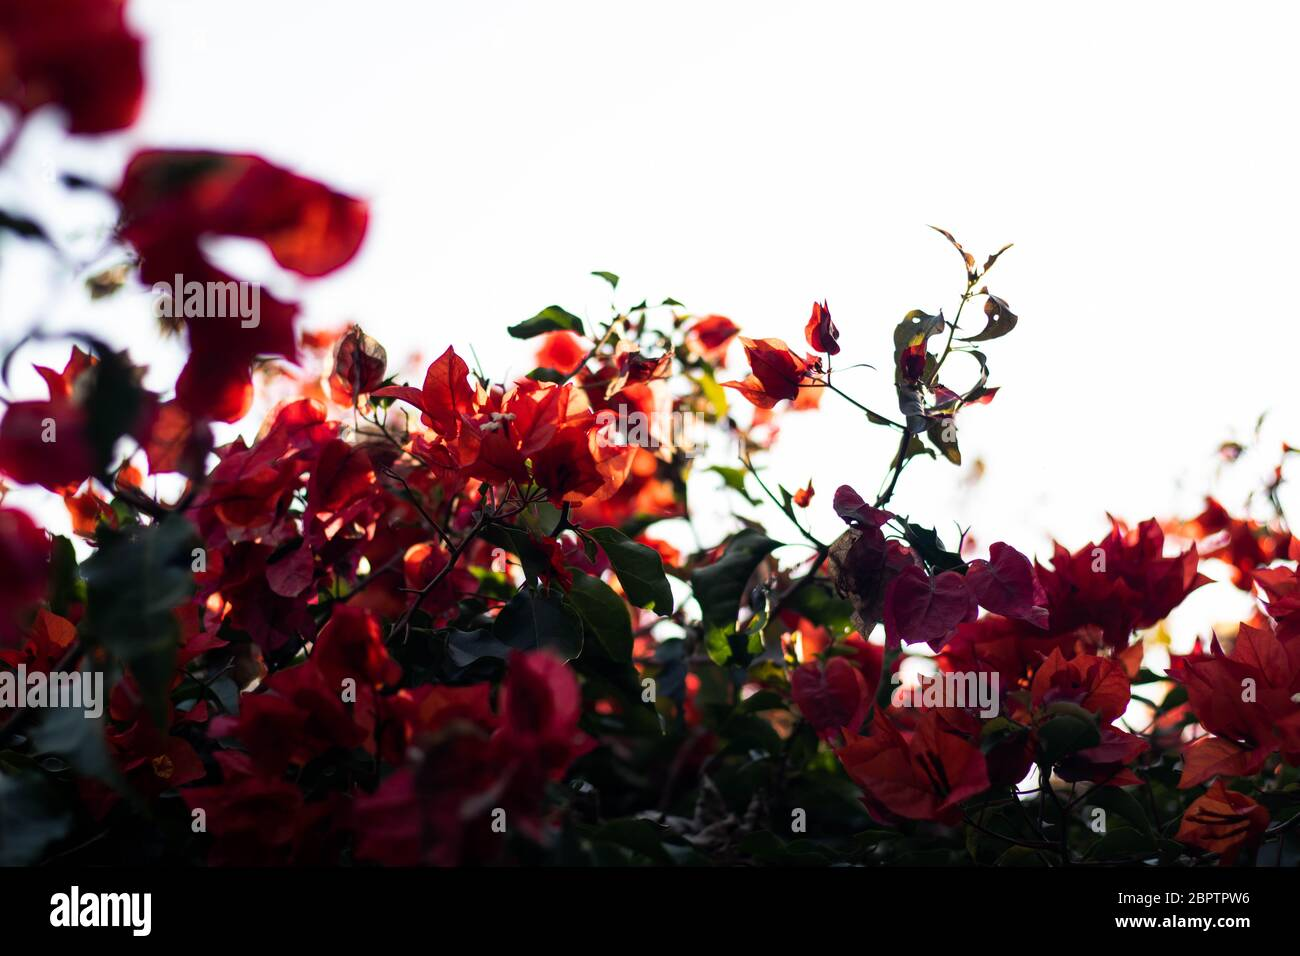 Photography Nature Background Hd High Resolution Stock Photography And Images Alamy